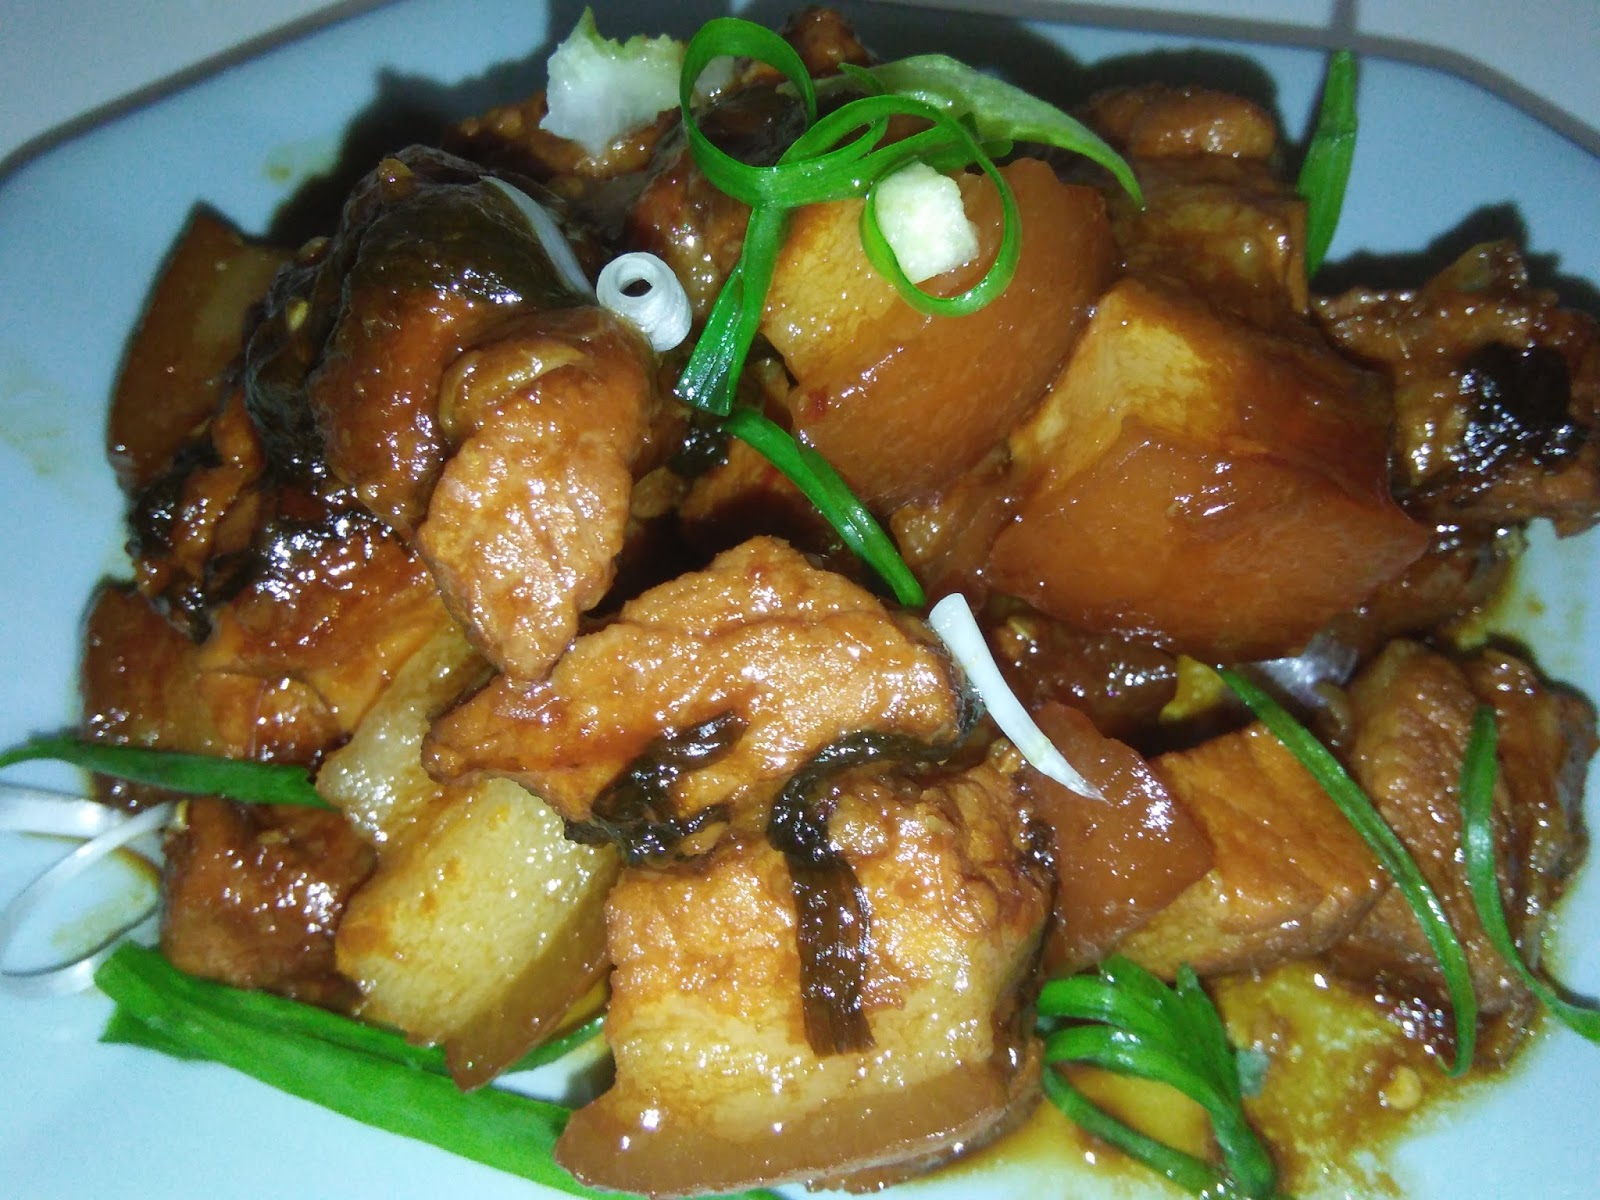 Cooking pleasure chinese styled glazed pork belly my mother in law wasnt eating well at all with hospital food after surgery she has to be on soft diet and the main meals provided by the hospital for days forumfinder Image collections